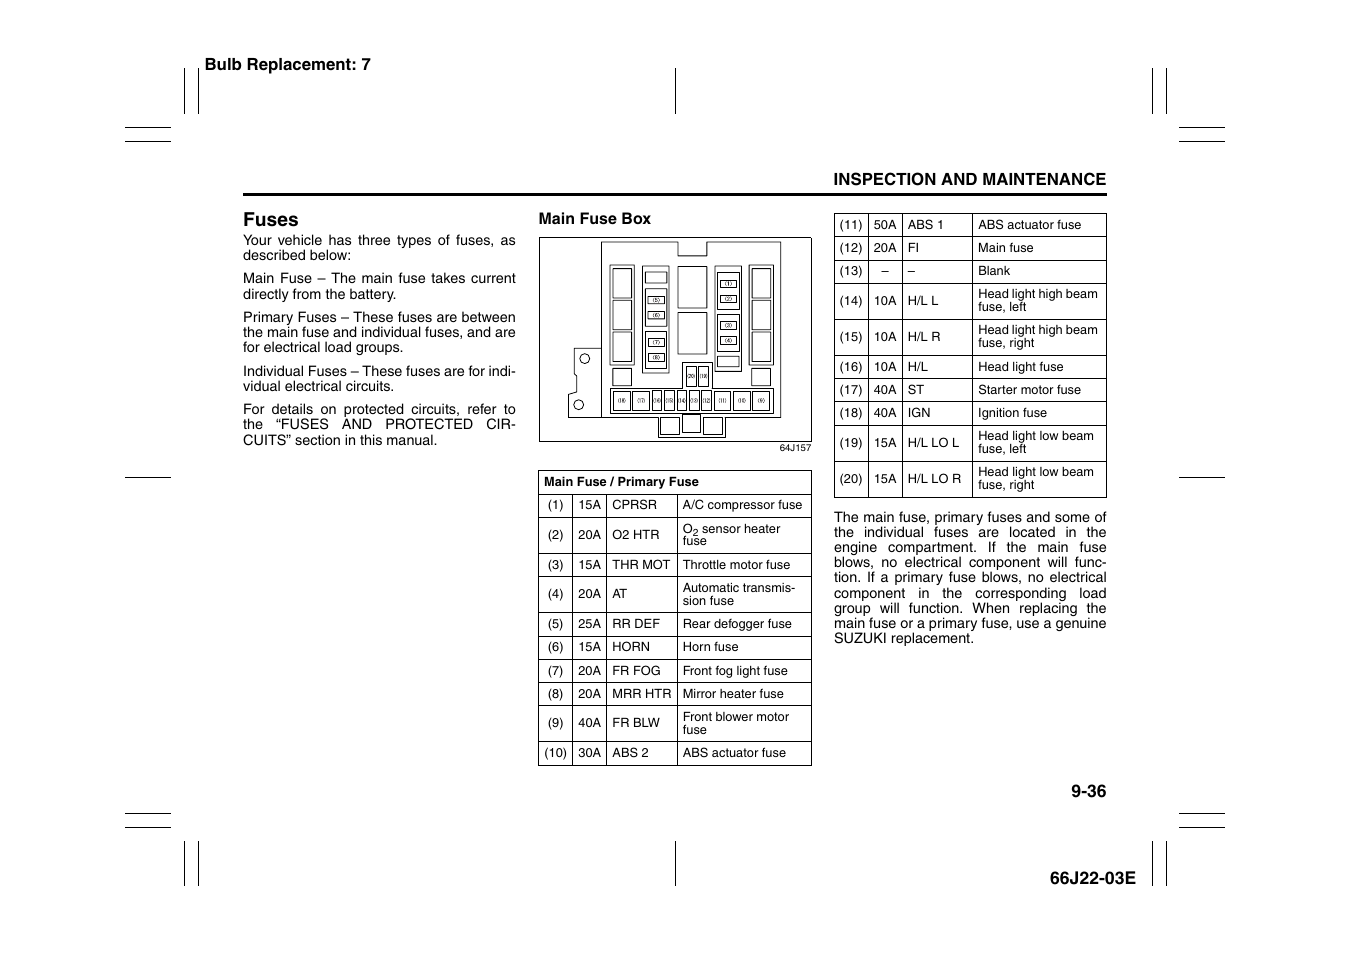 Service manual Manual For A 2002 Suzuki Vitara Fuse Guide